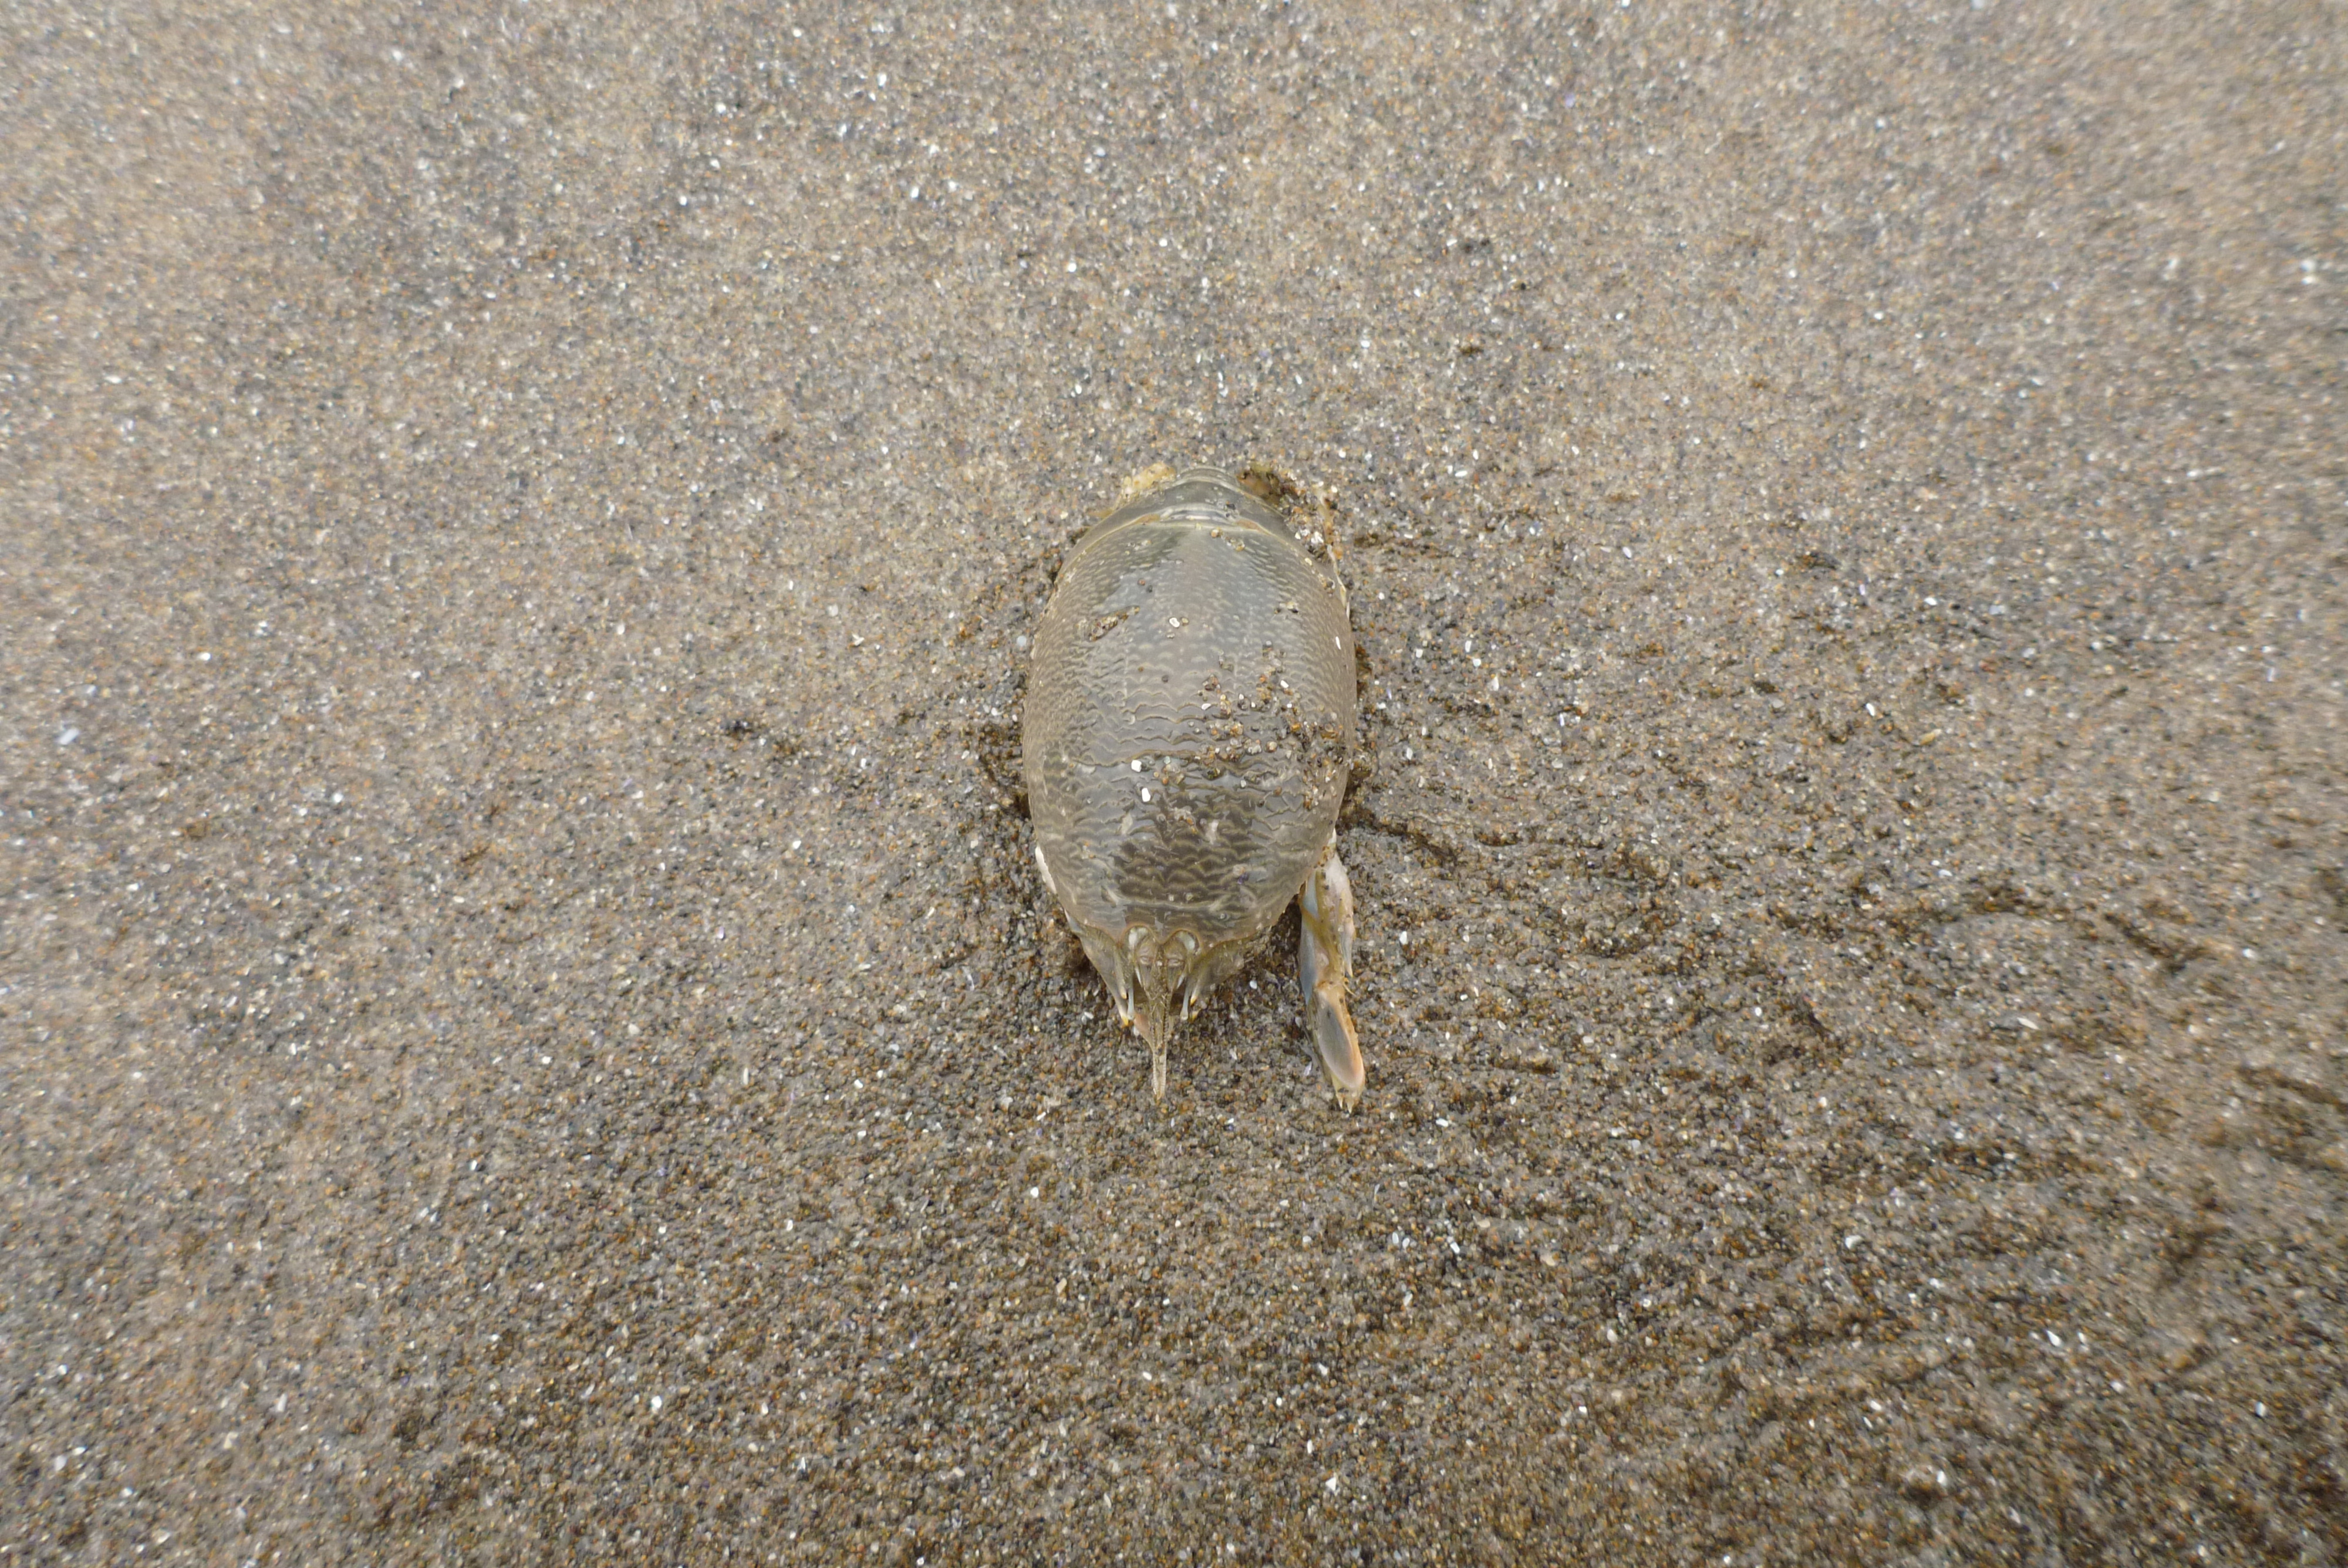 pacific mole crab - photo #26